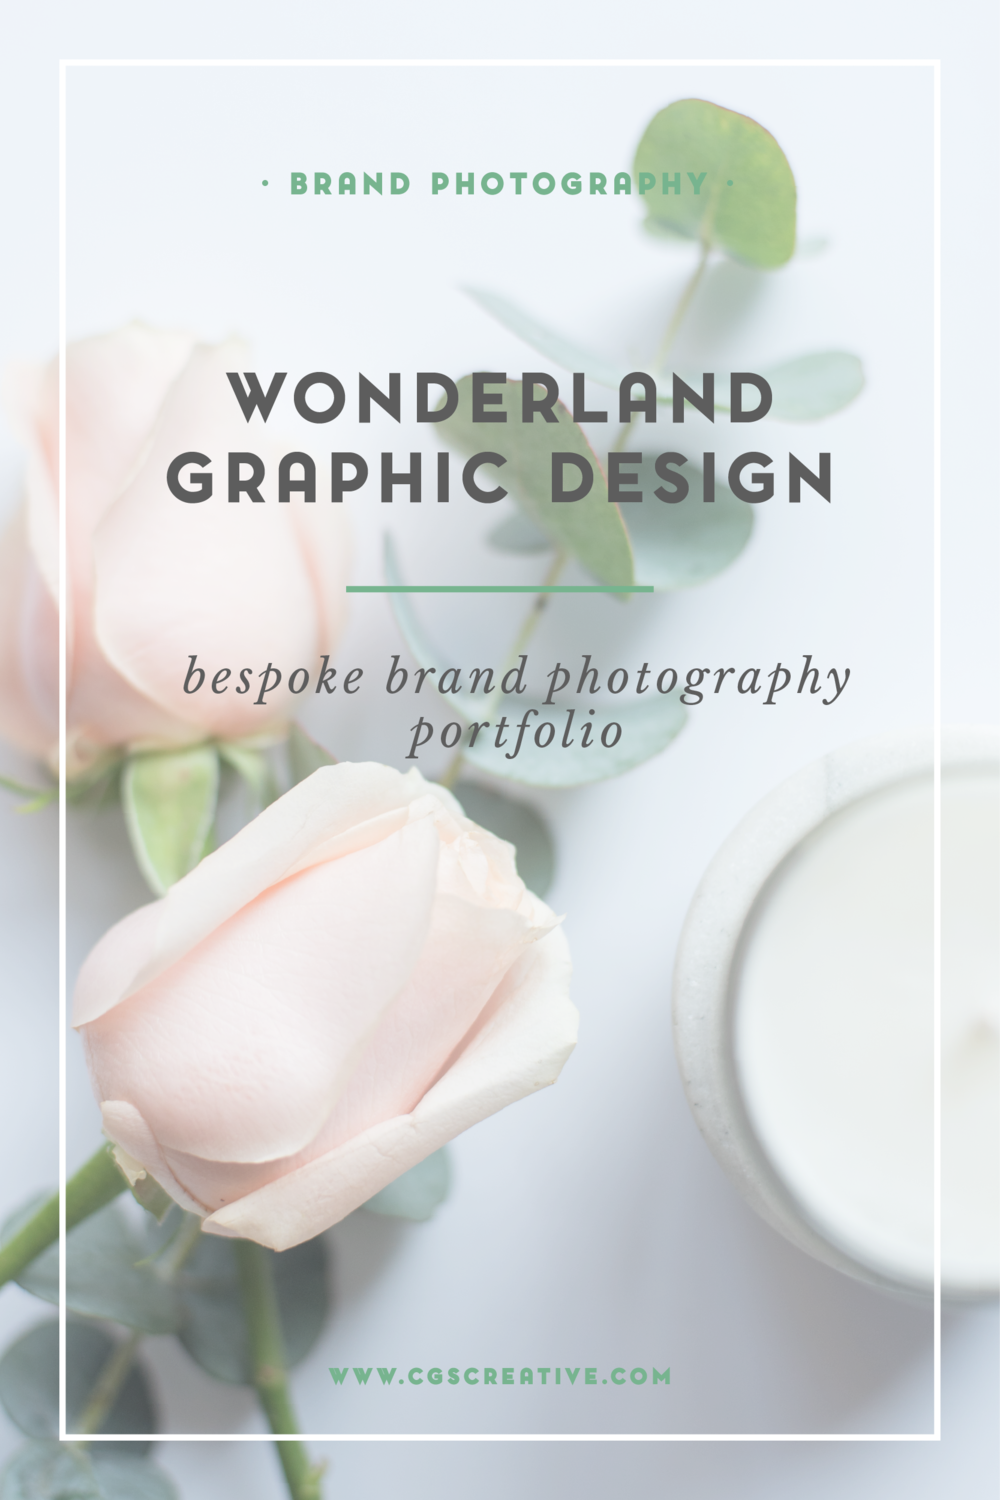 Wonderland Graphic Design Brand Photography Portfolio by Roxy hutton CGScreative-02.png